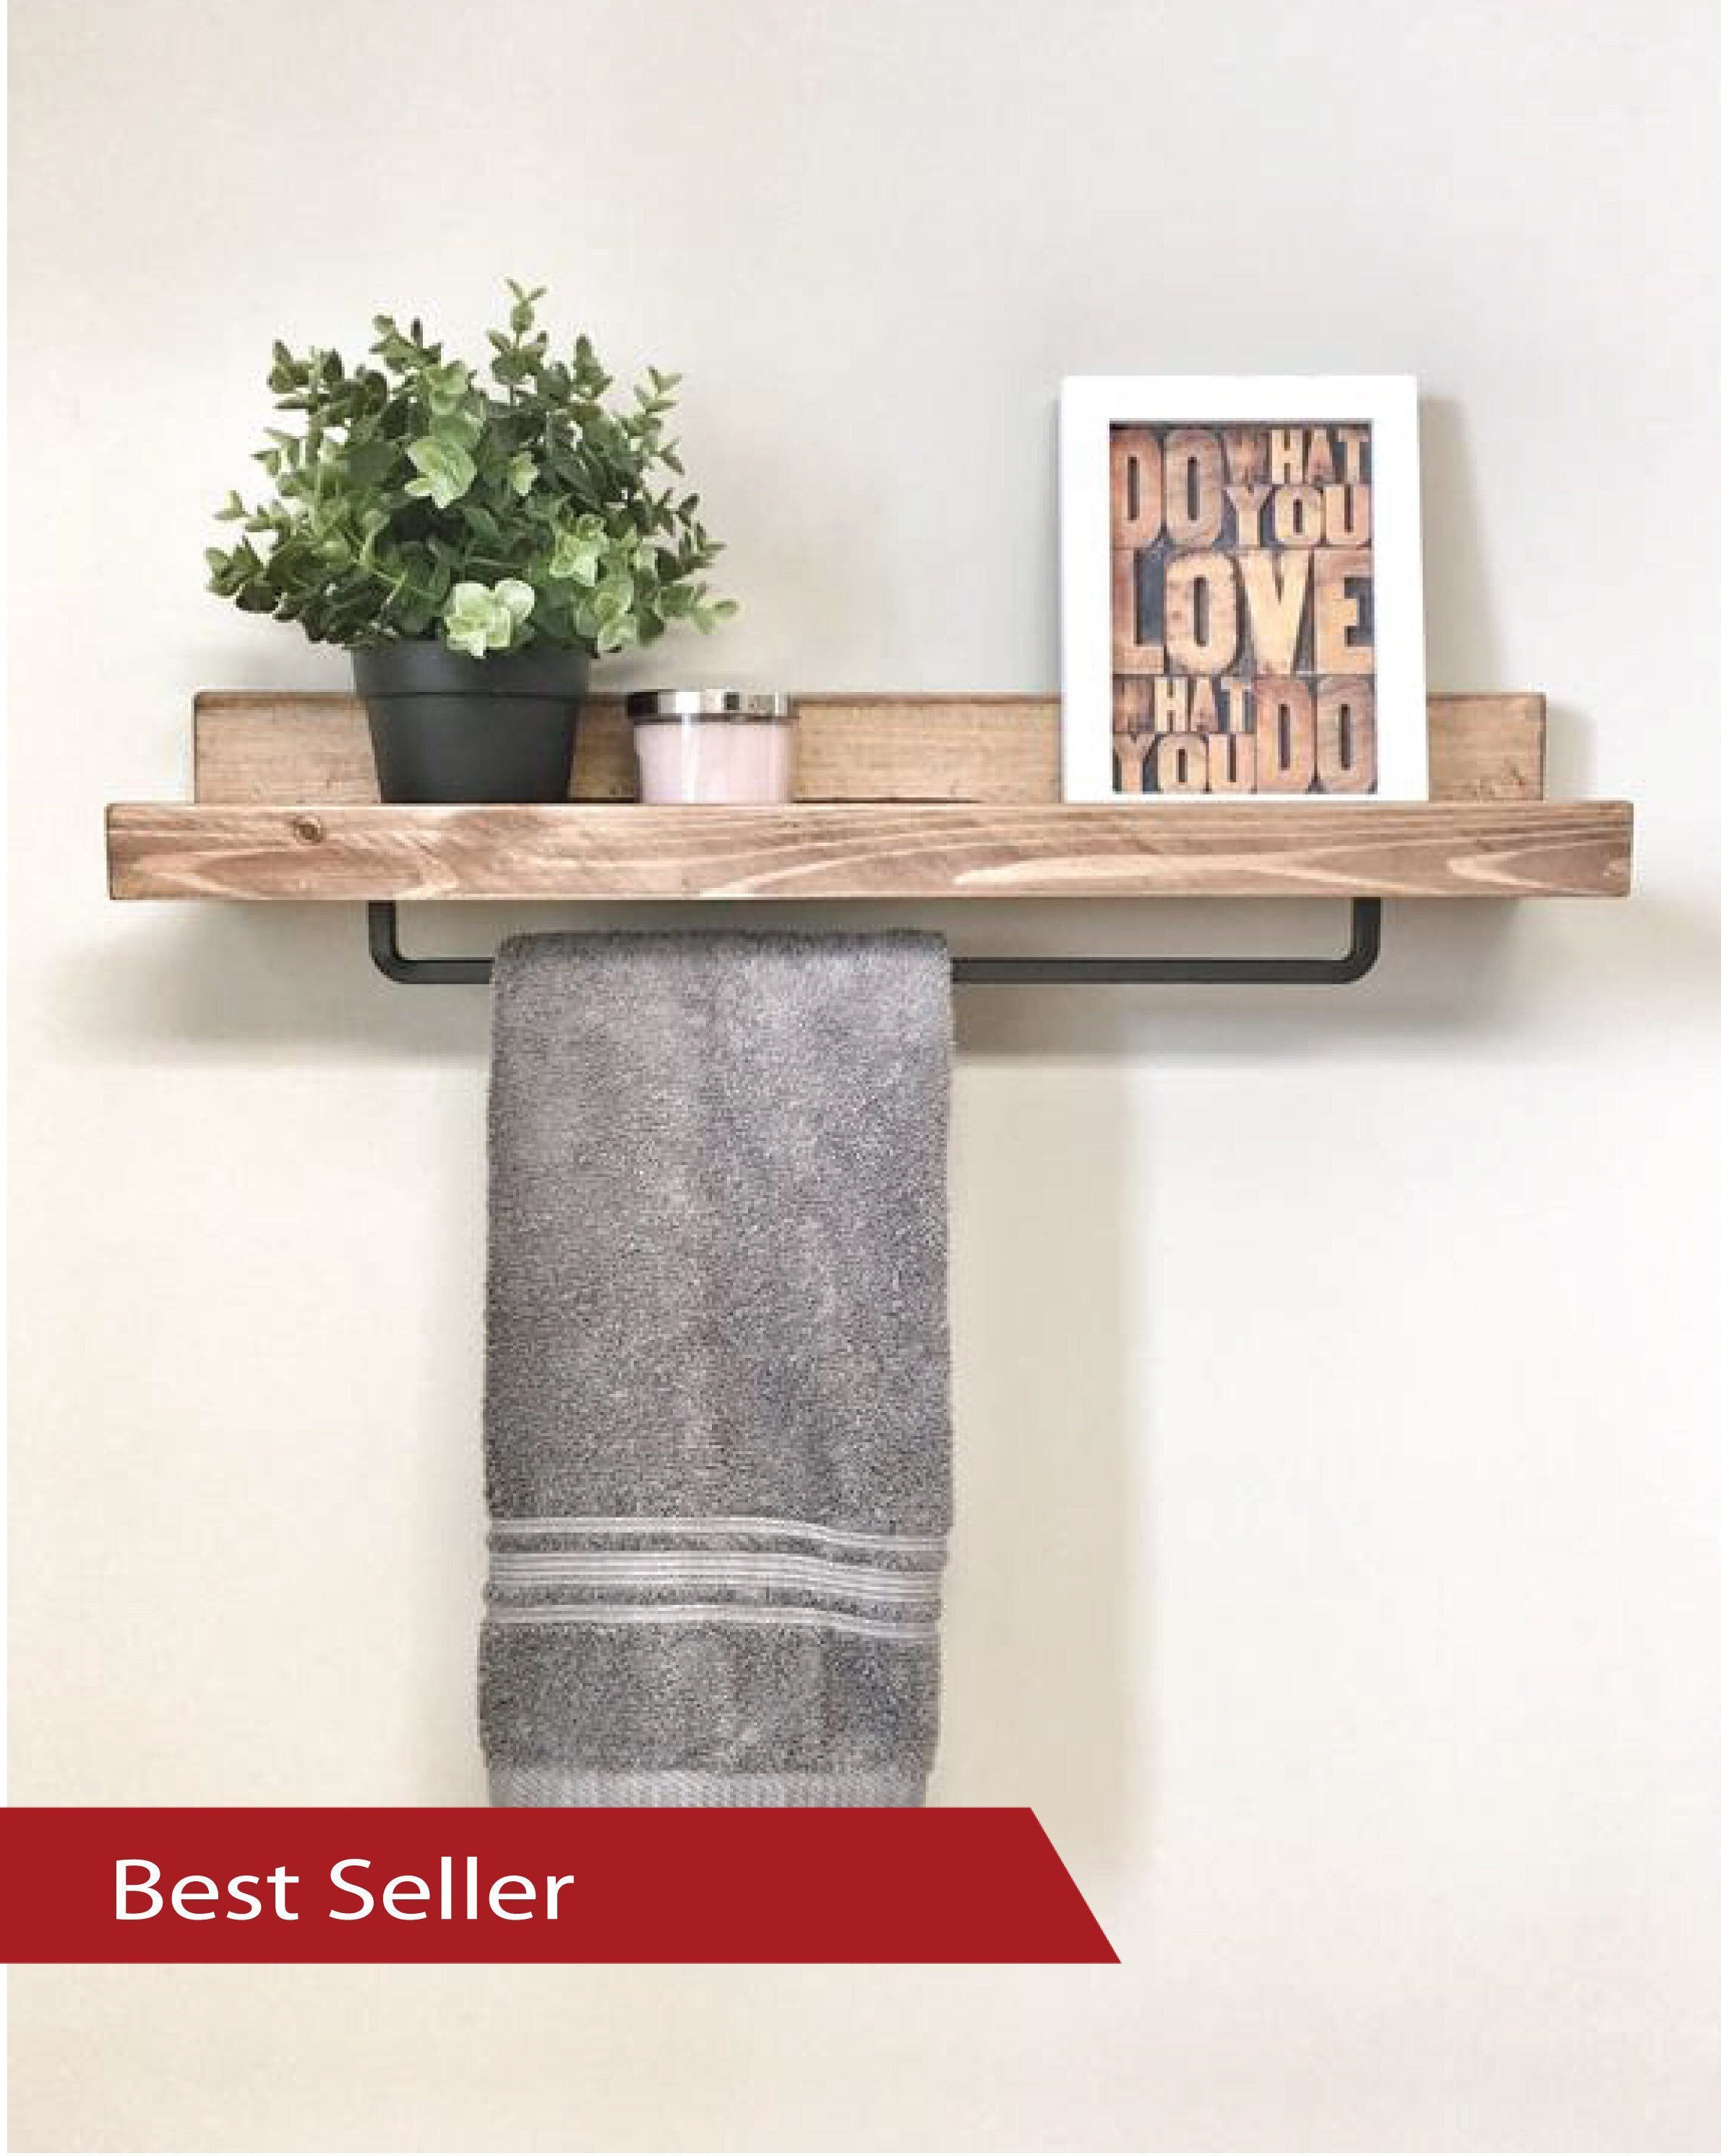 Wood Towel Rack Shelf Ledge Shelves Wooden Rack Rustic Home Decor Bathroom Towel Rack Shelf Farmhouse Towel Bar Shelf Farmhouse Towel Bars Floating Shelves Bathroom Shelves